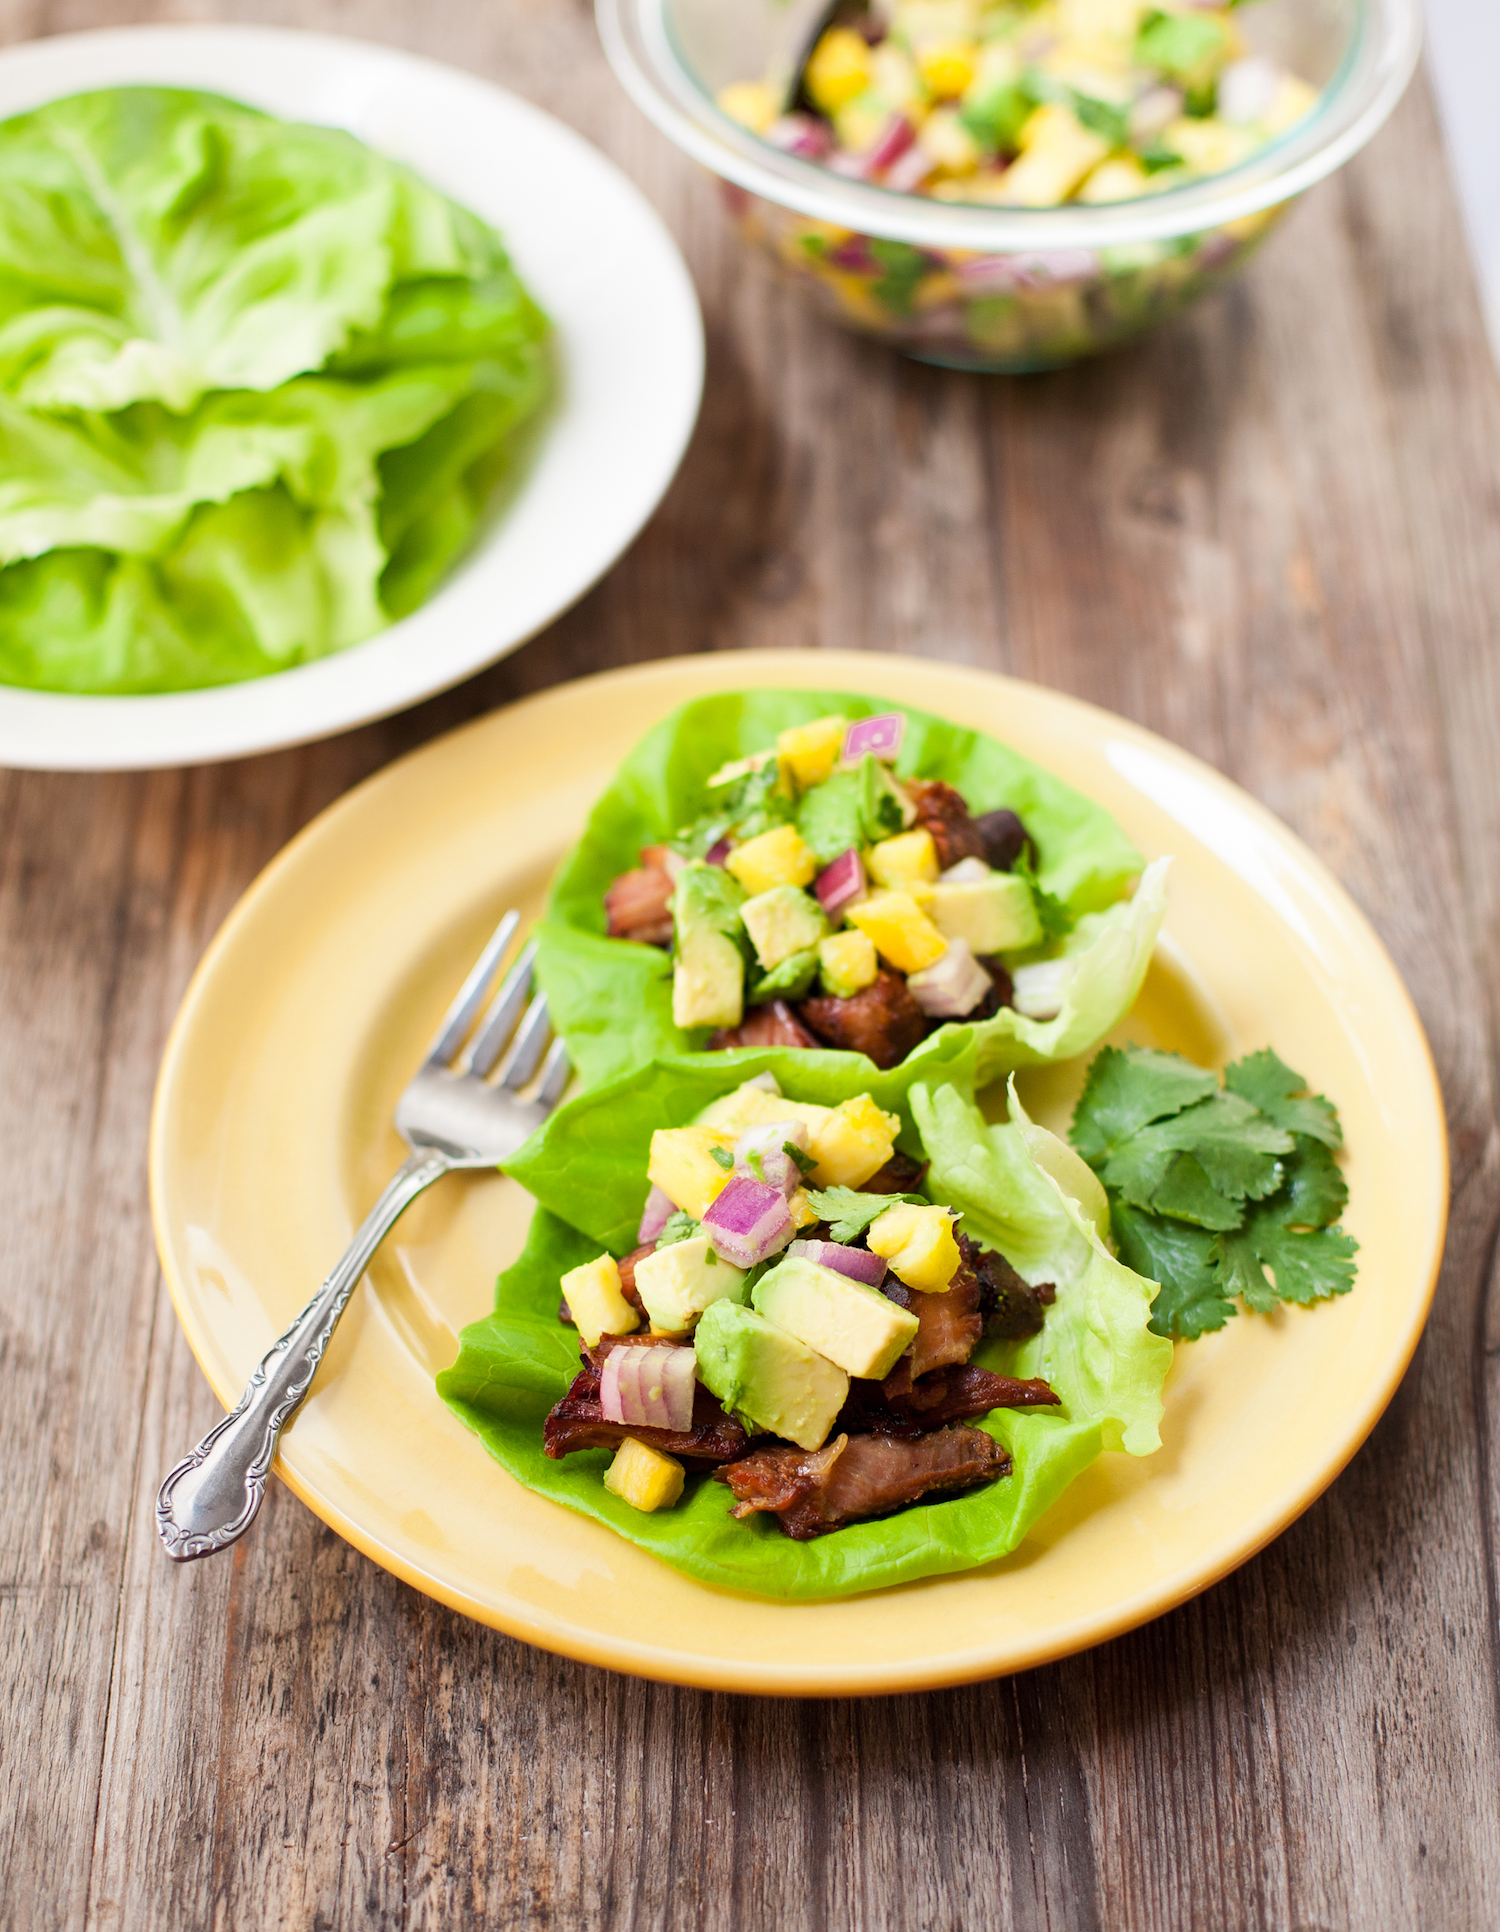 Slow-Cooker Carnitas Lettuce Wraps with Pineapple & Avocado Salsa - A Calculated Whisk